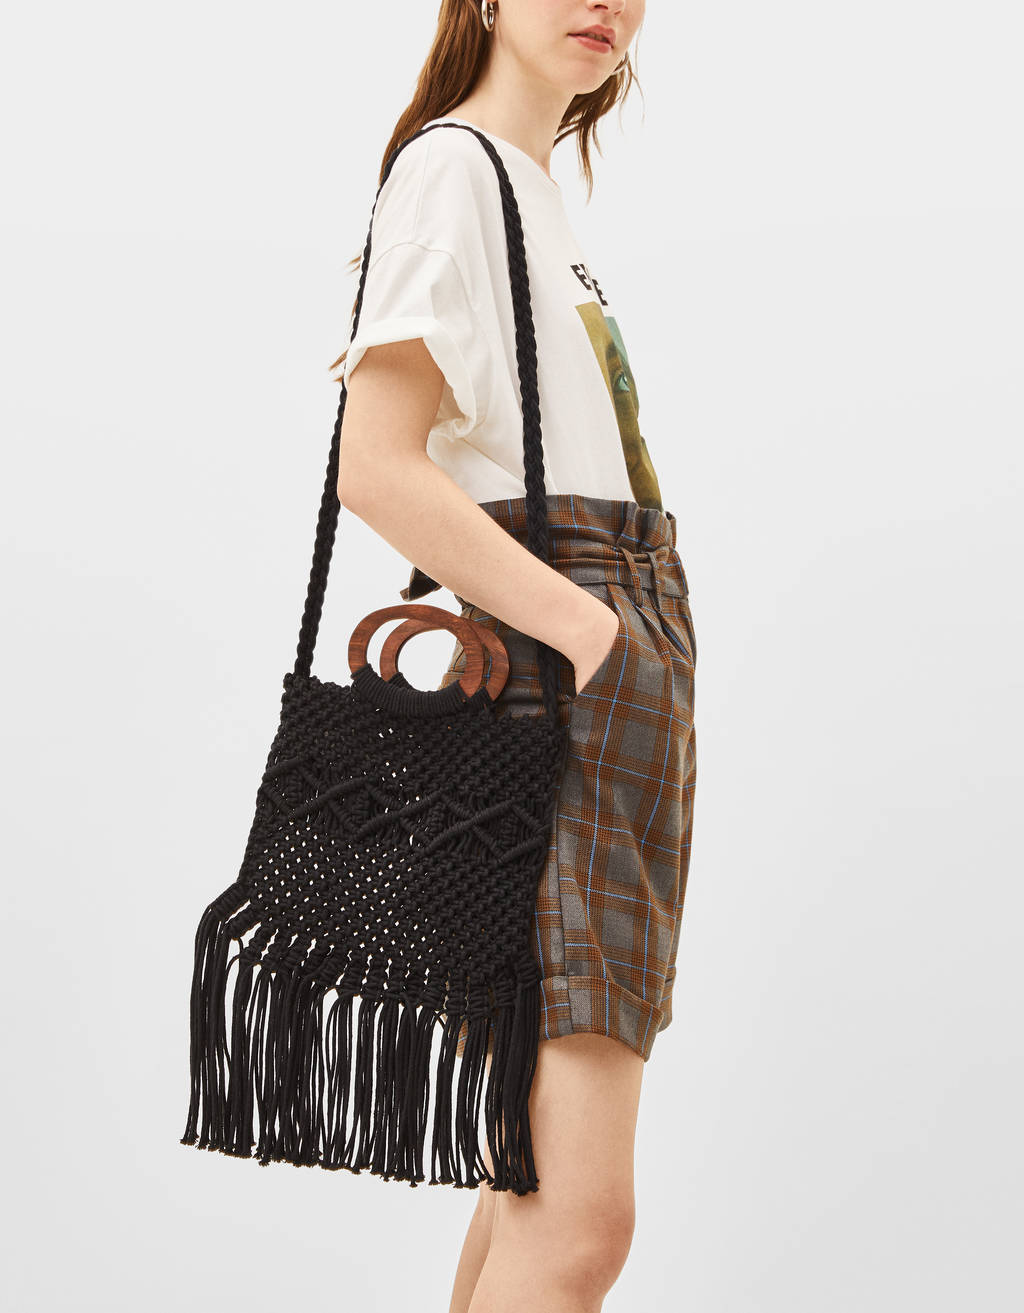 Macramé bag with fringing